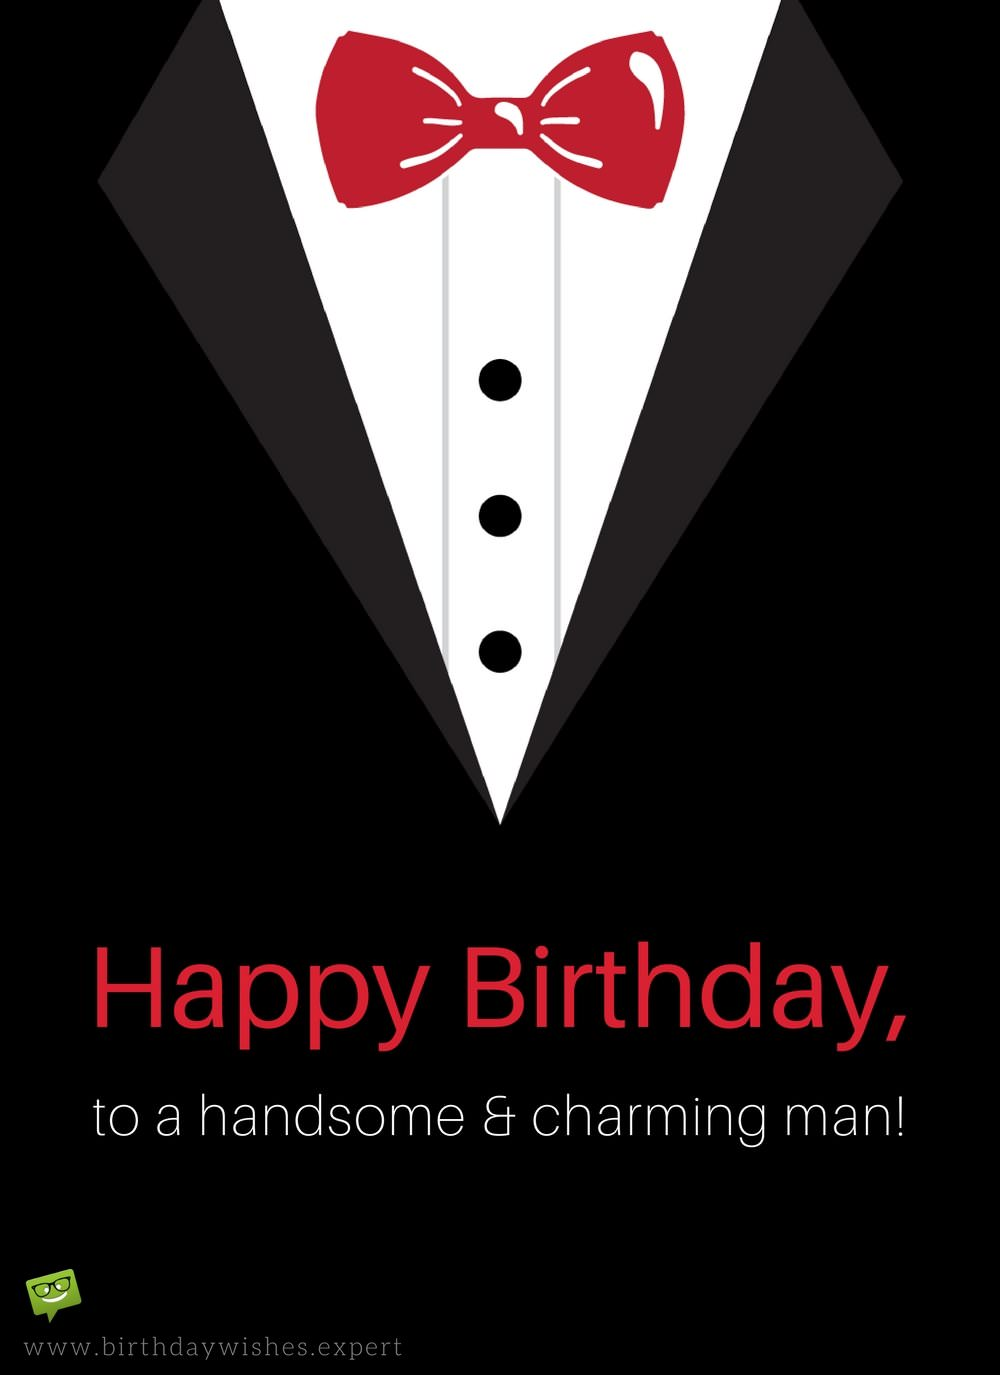 50 romantic birthday wishes for your husband happy birthday to a handsome and charming man best wishes m4hsunfo